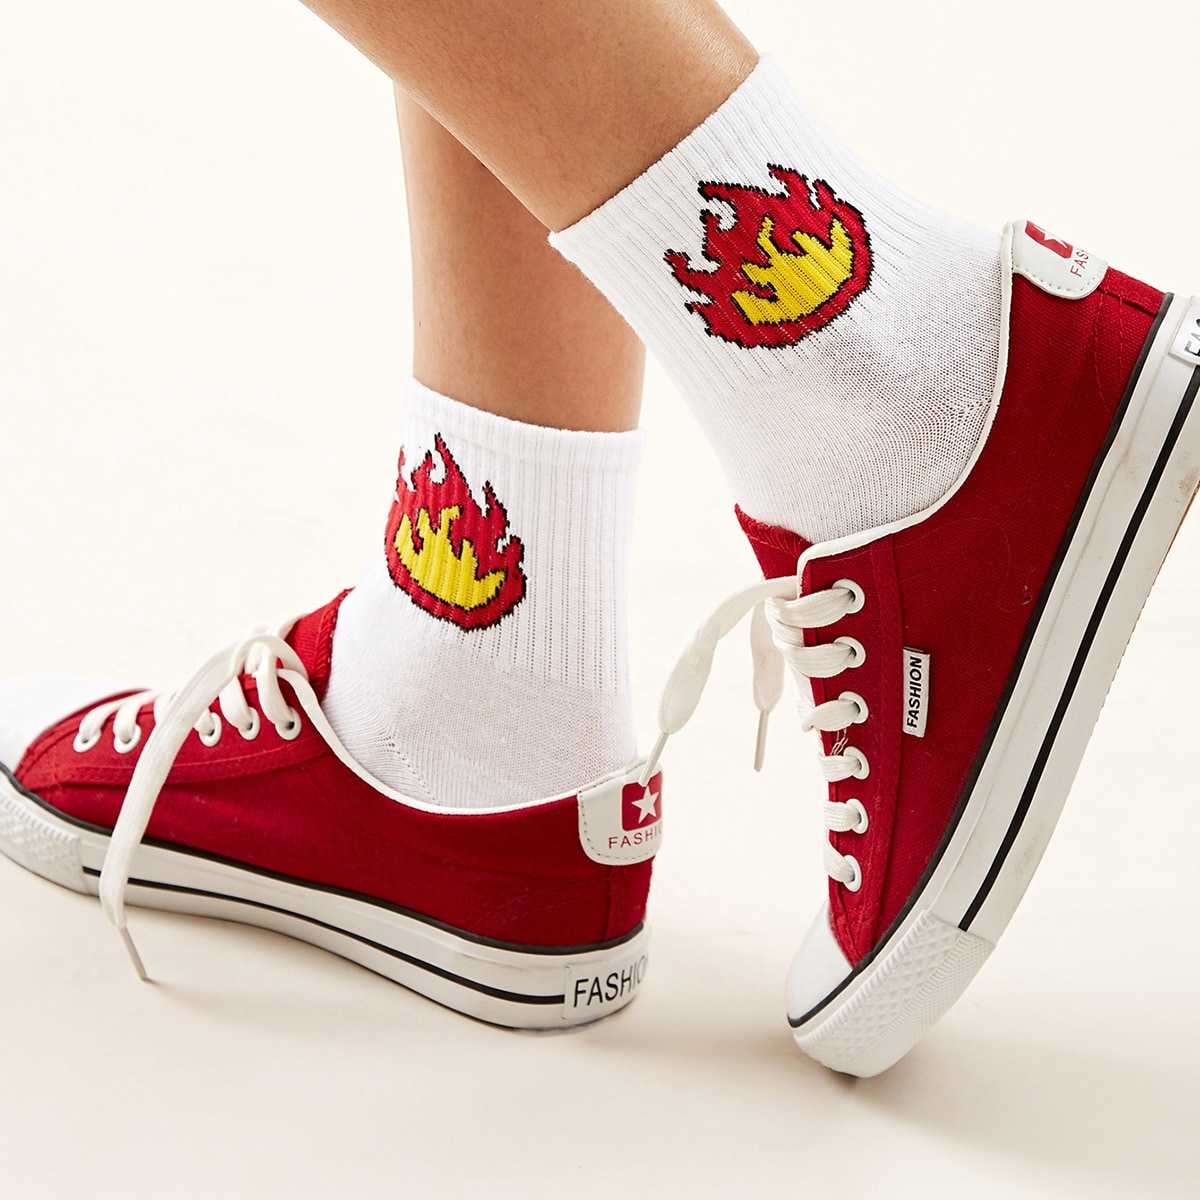 Flame Pattern Socks 1pair in White by ROMWE on GOOFASH